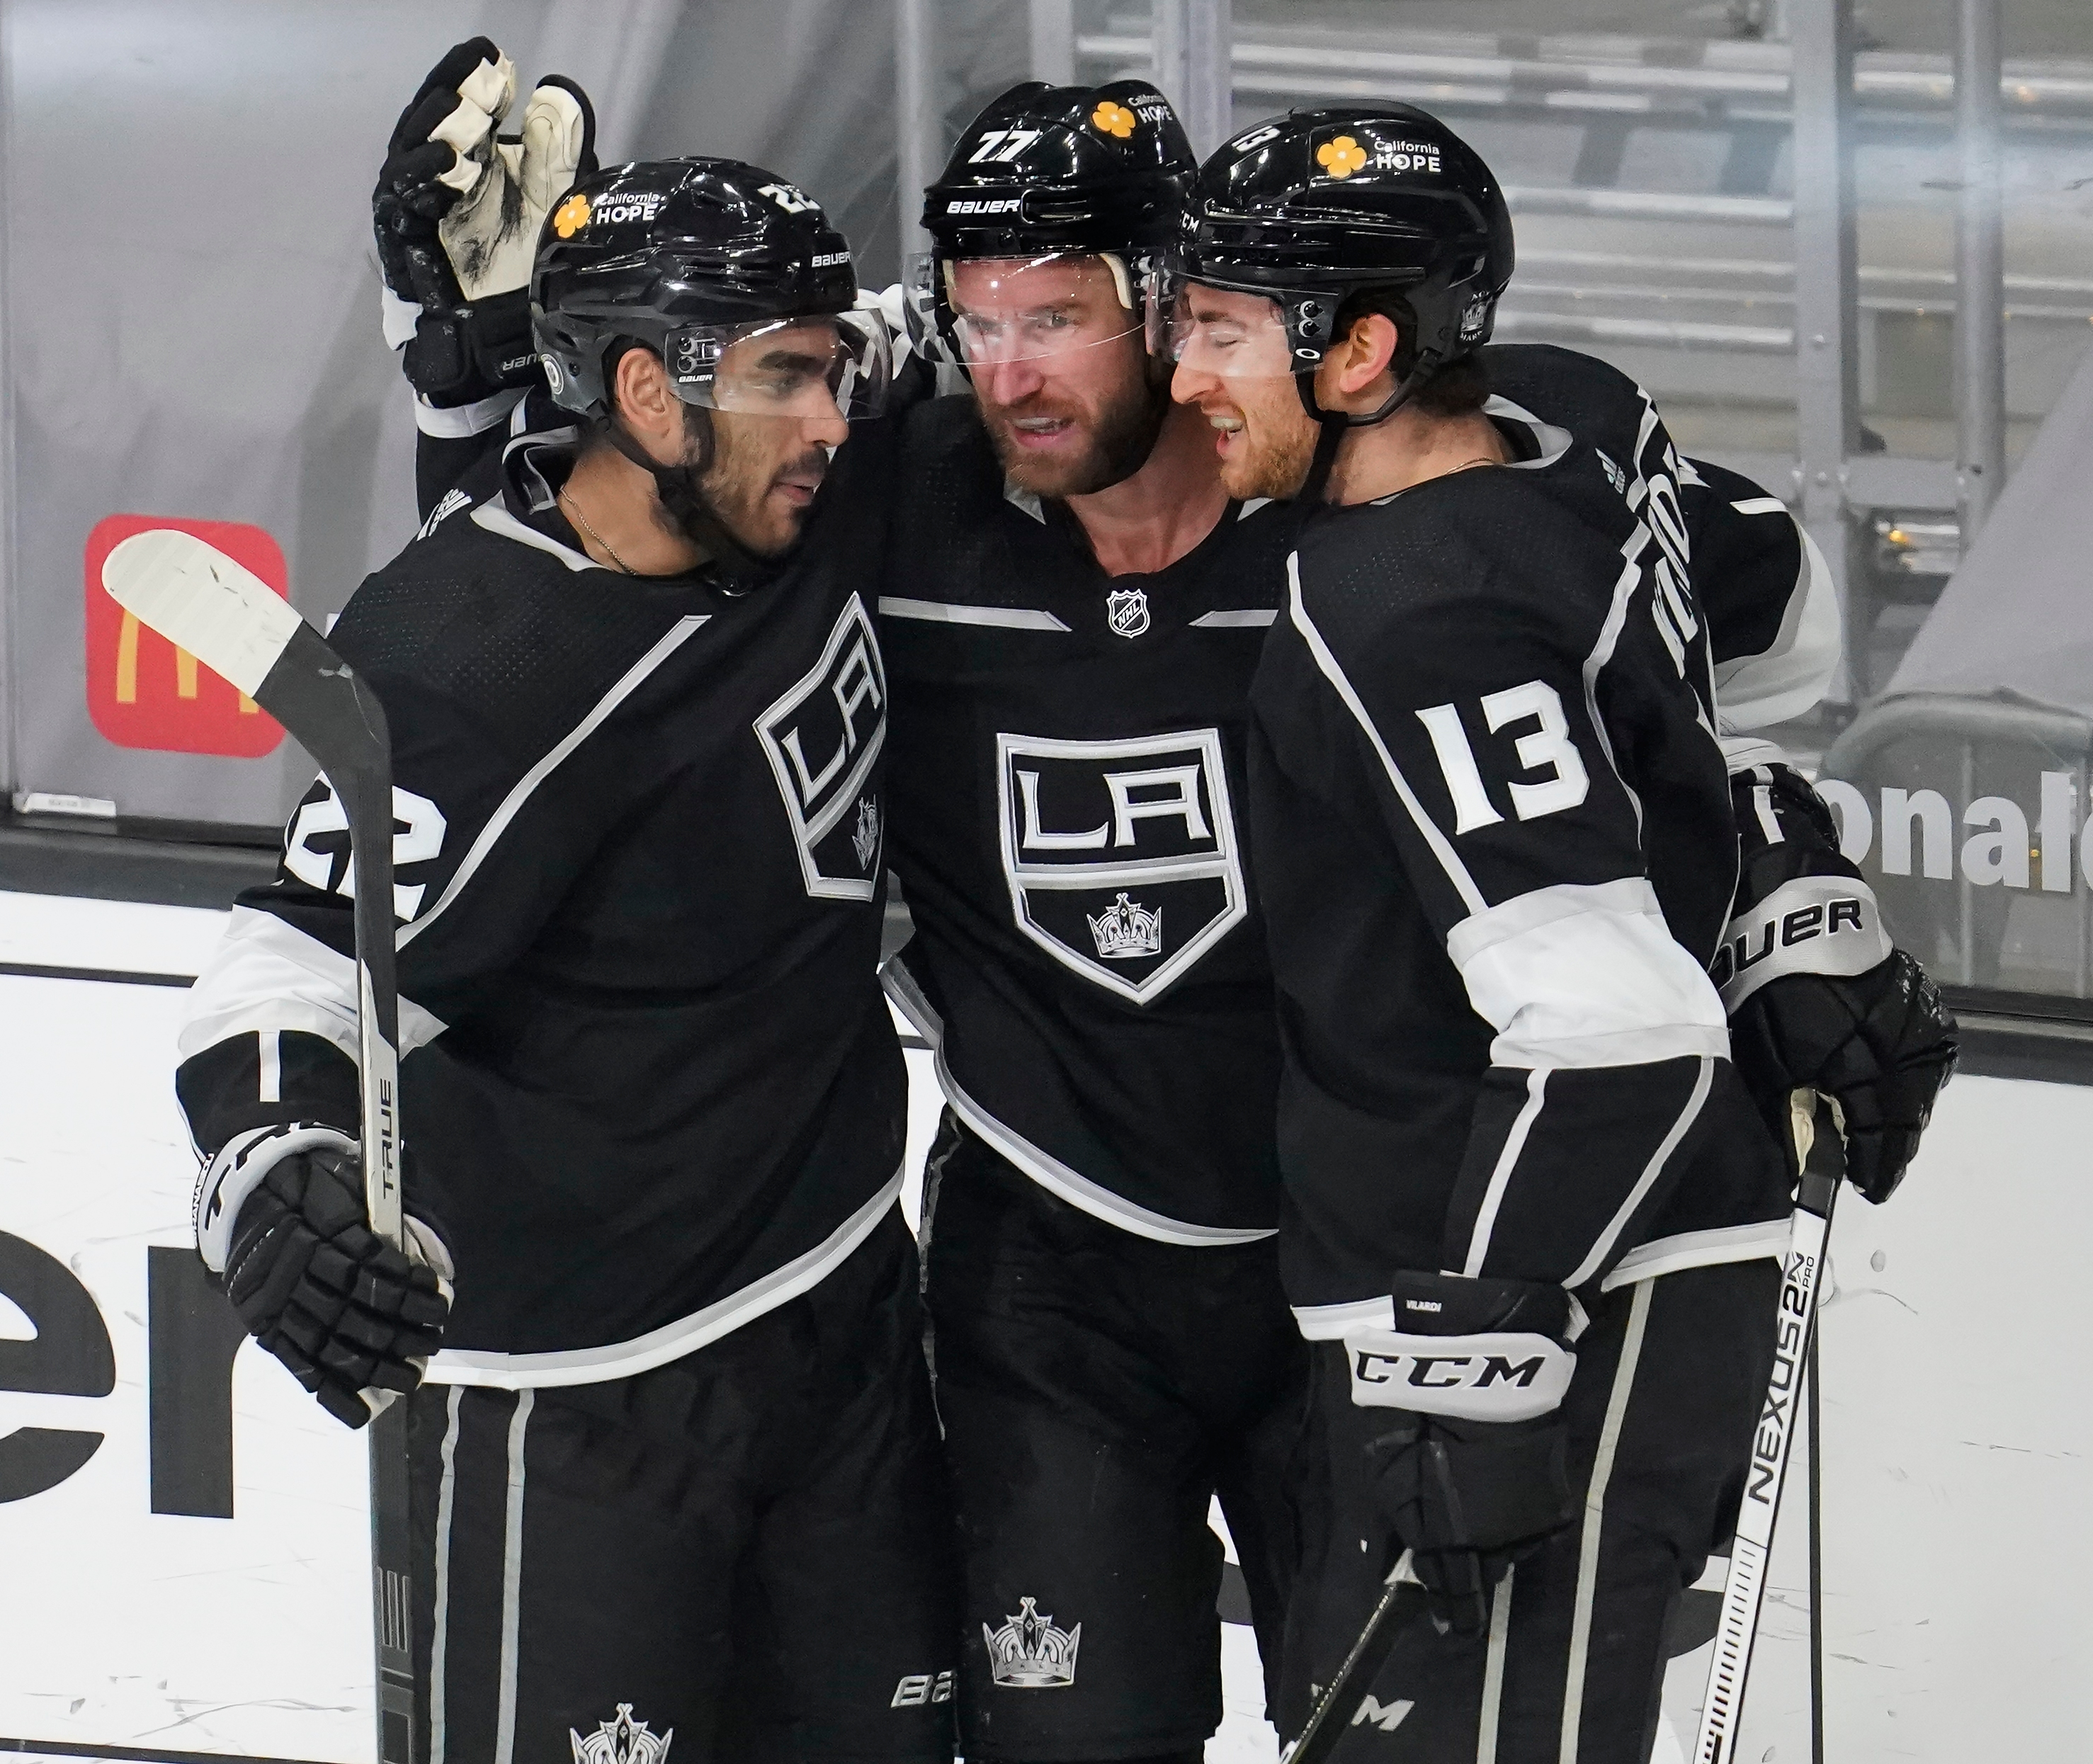 Los Angeles Kings center Jeff Carter (77) celebrates with left wing Andreas Athanasiou (22) and center Gabriel Vilardi (13) after scoring against the St. Louis Blues in the second period at Staples Center. Mandatory Credit: Robert Hanashiro